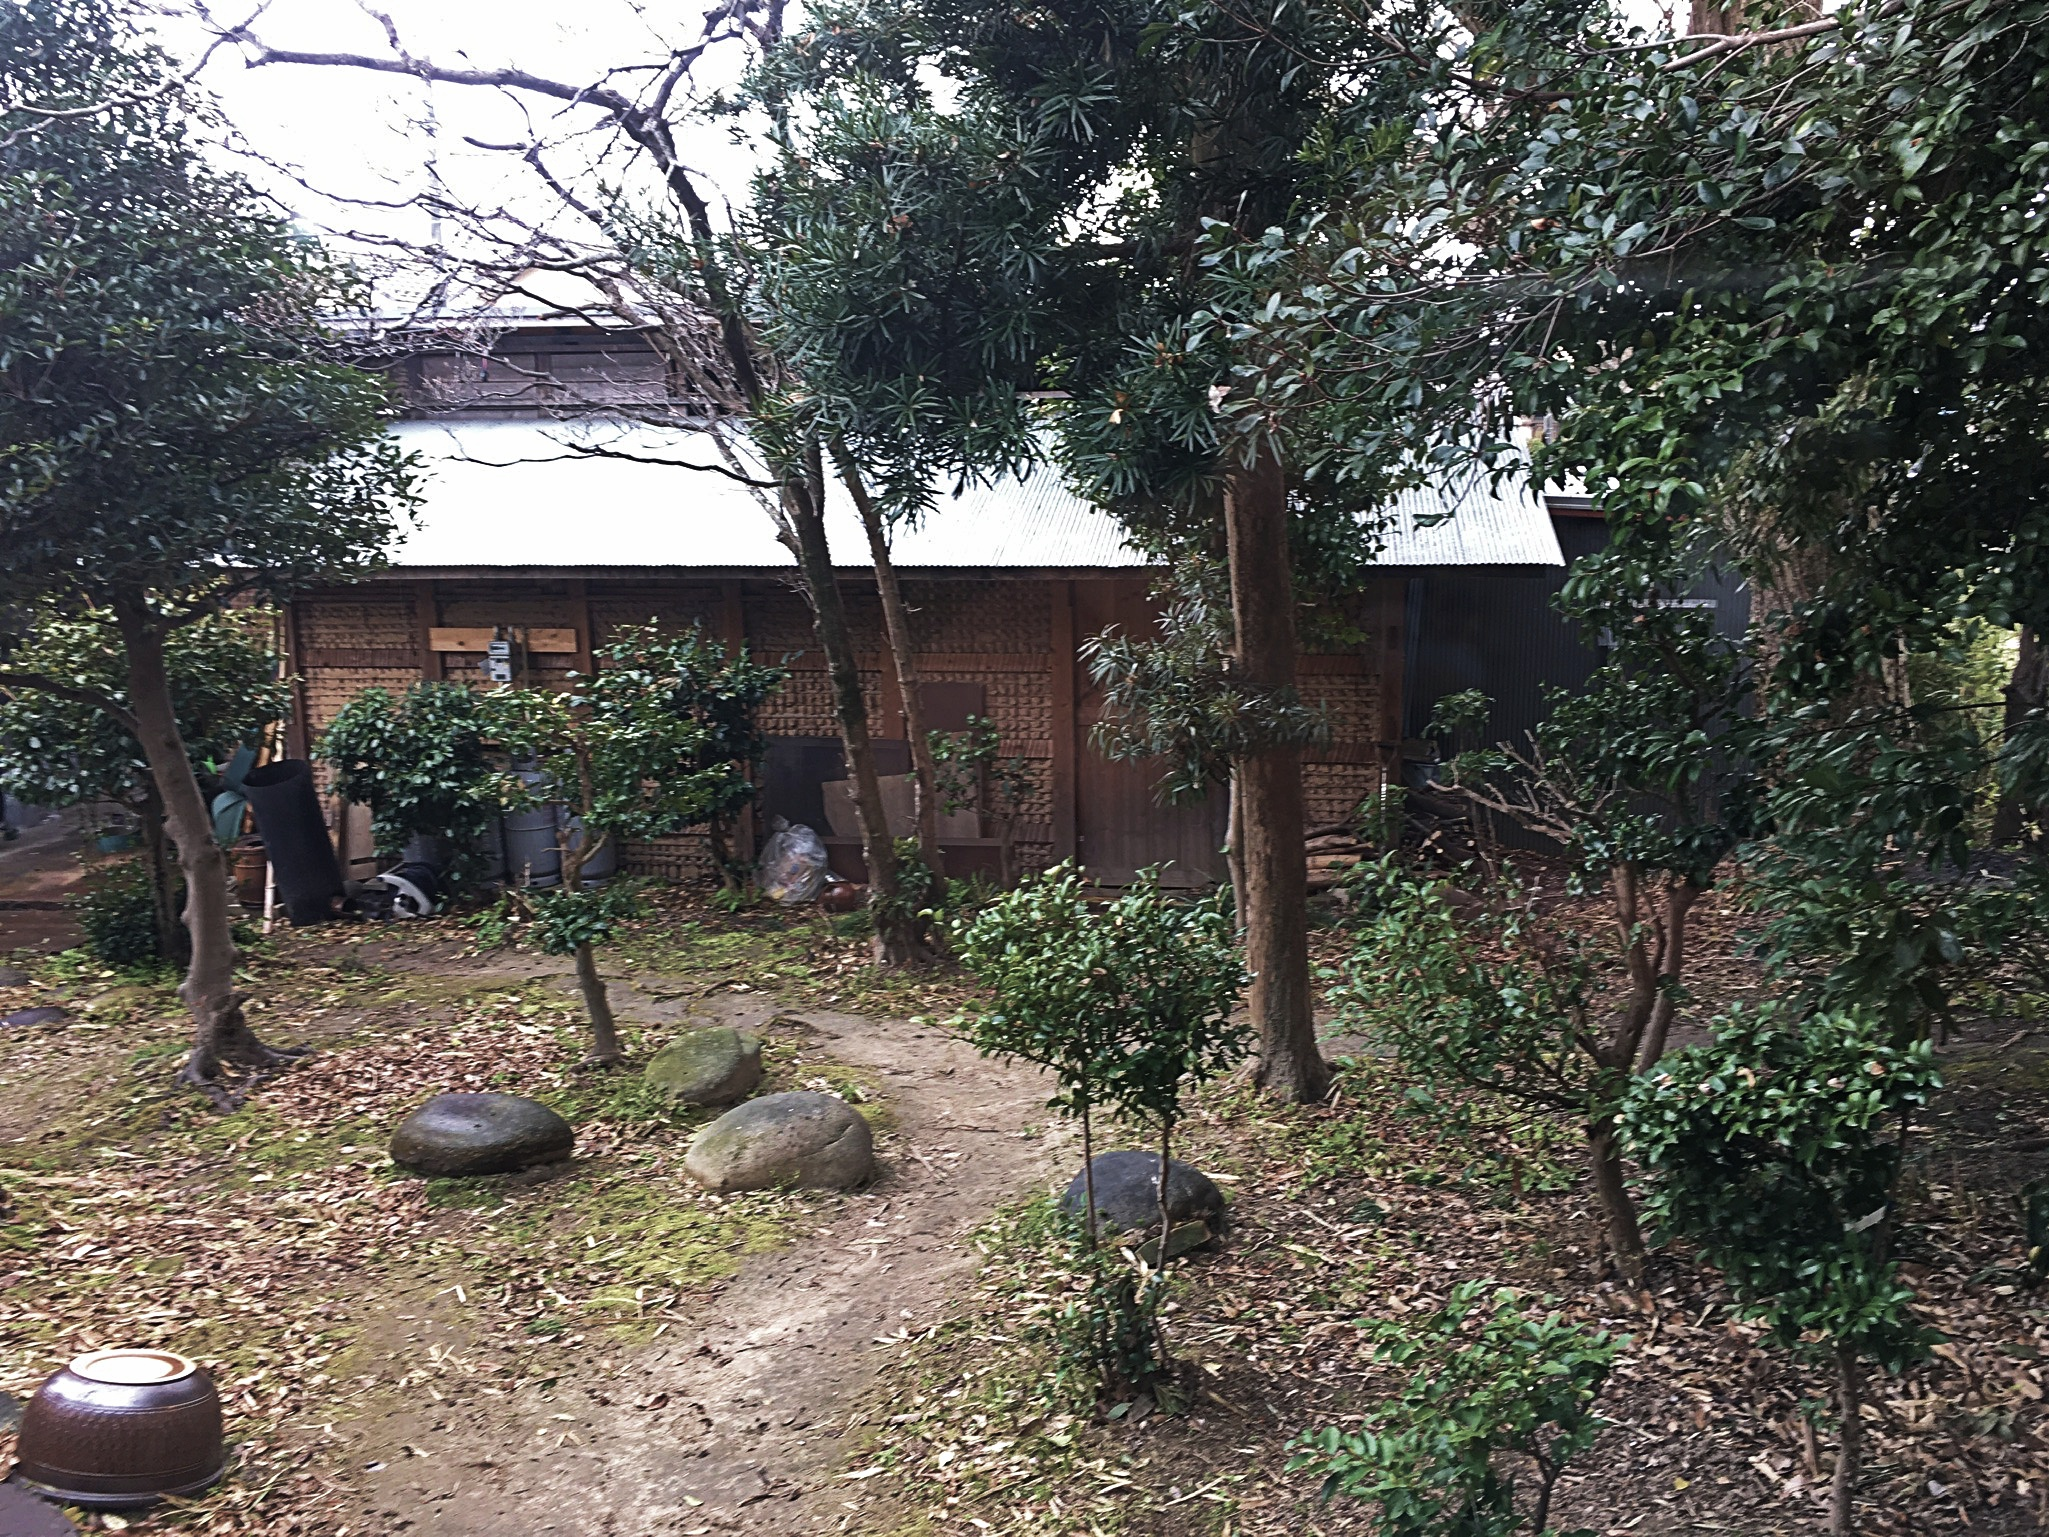 Exterior view of Asano Kajiya. Small dirt path leading to wooden building surrounded by small trees and rocks.